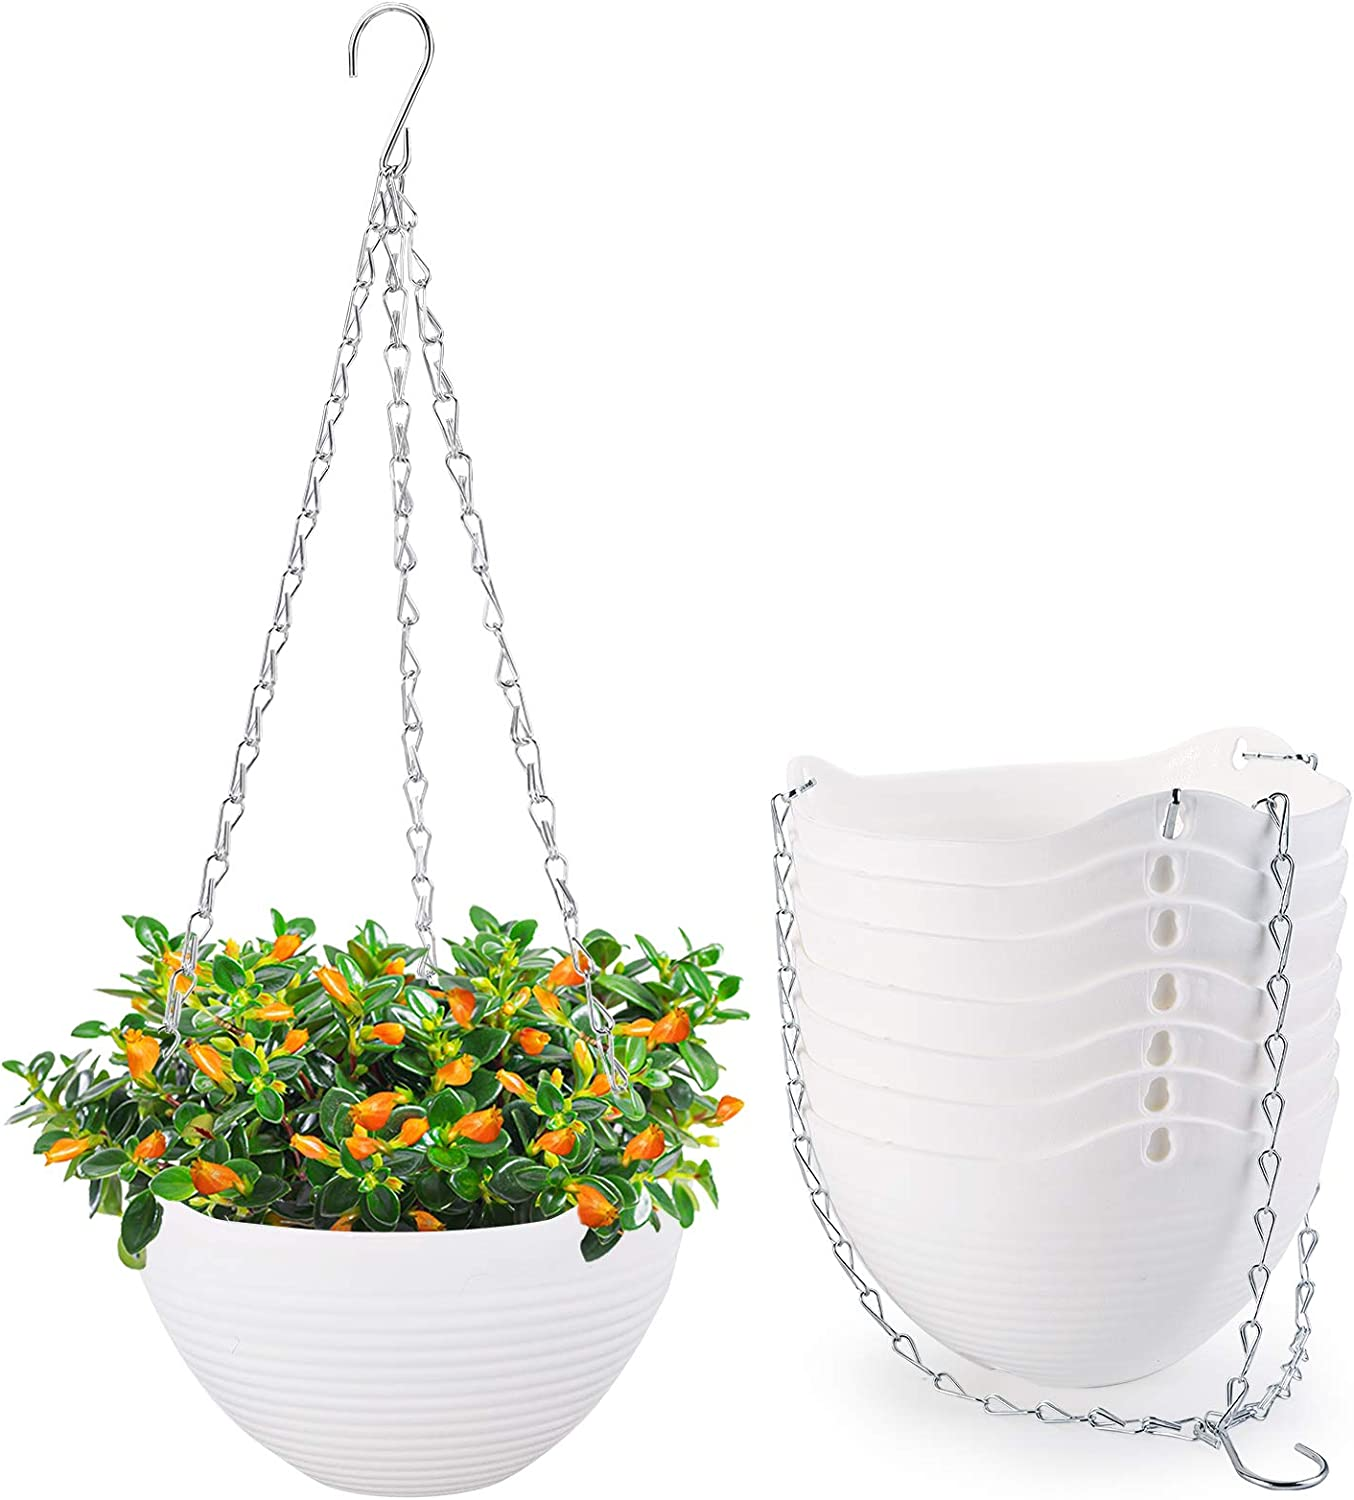 Foraineam 8 Direct stock discount Pack White Hanging Planters Out Indoor Self-Watering outlet